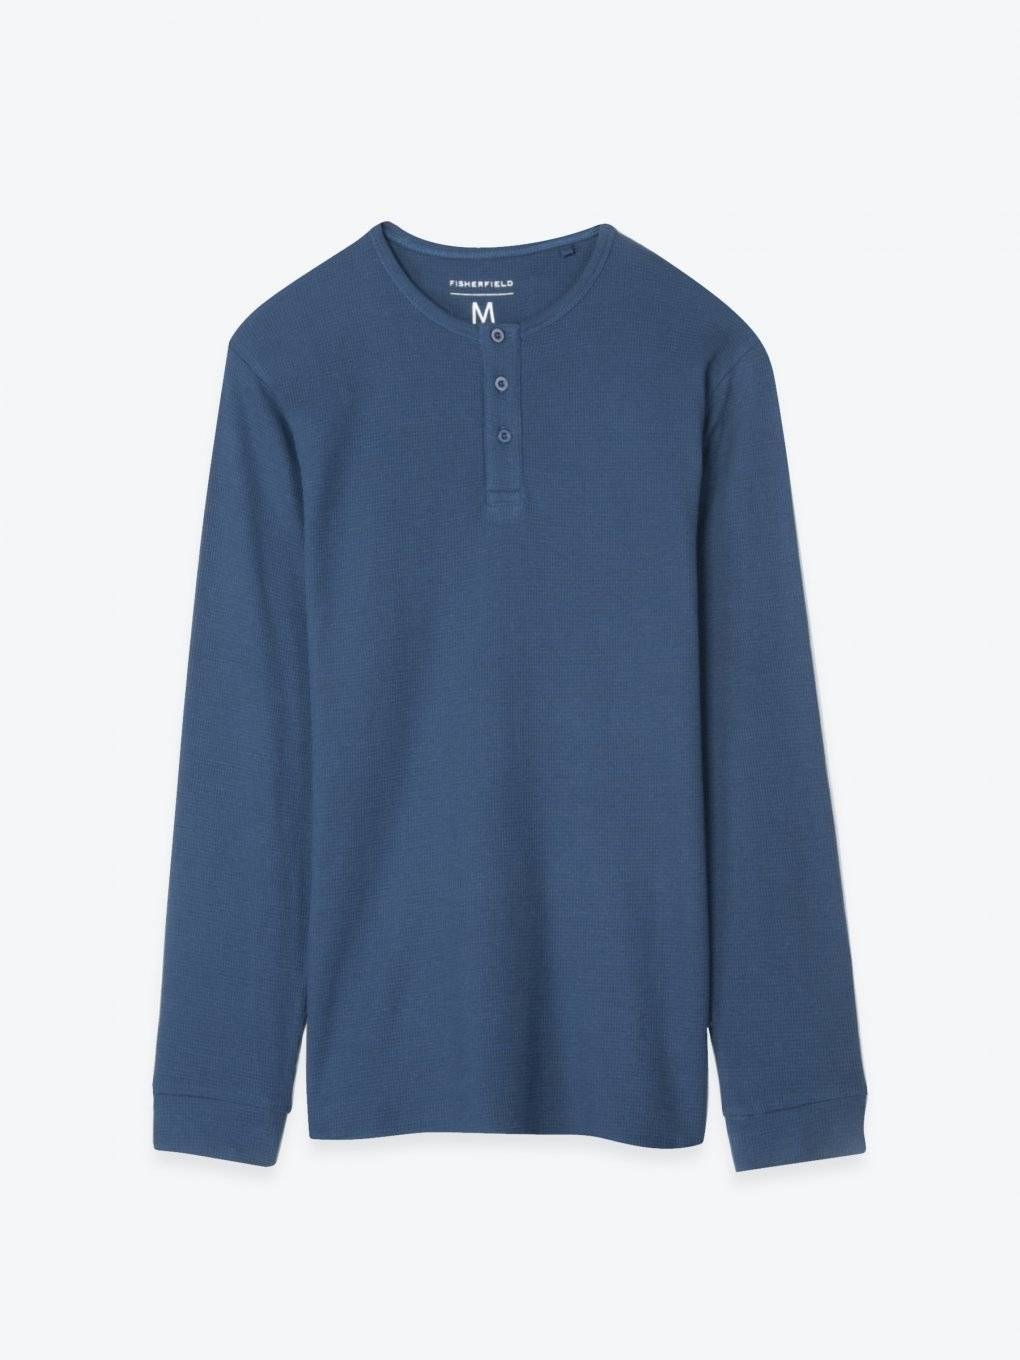 Waffle knit basic long sleeve t-shirt